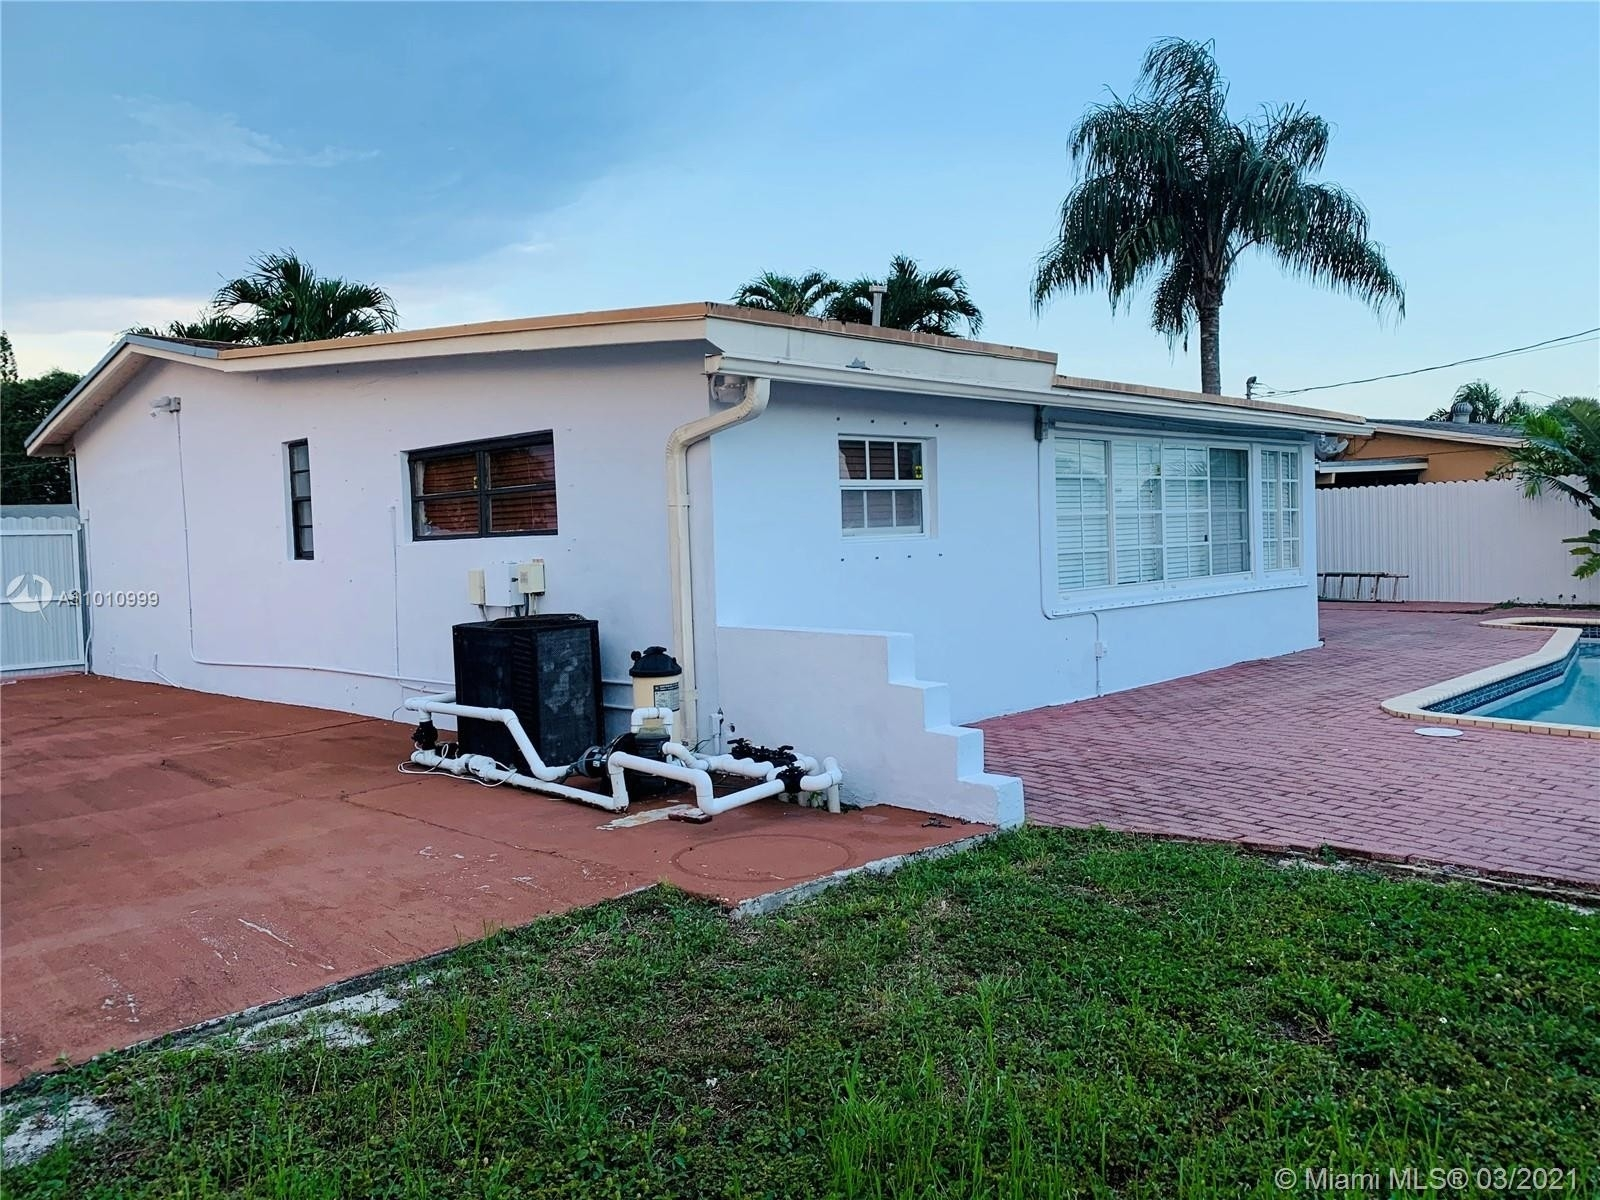 17. Single Family Homes for Sale at Palm Springs North, Hialeah, FL 33015